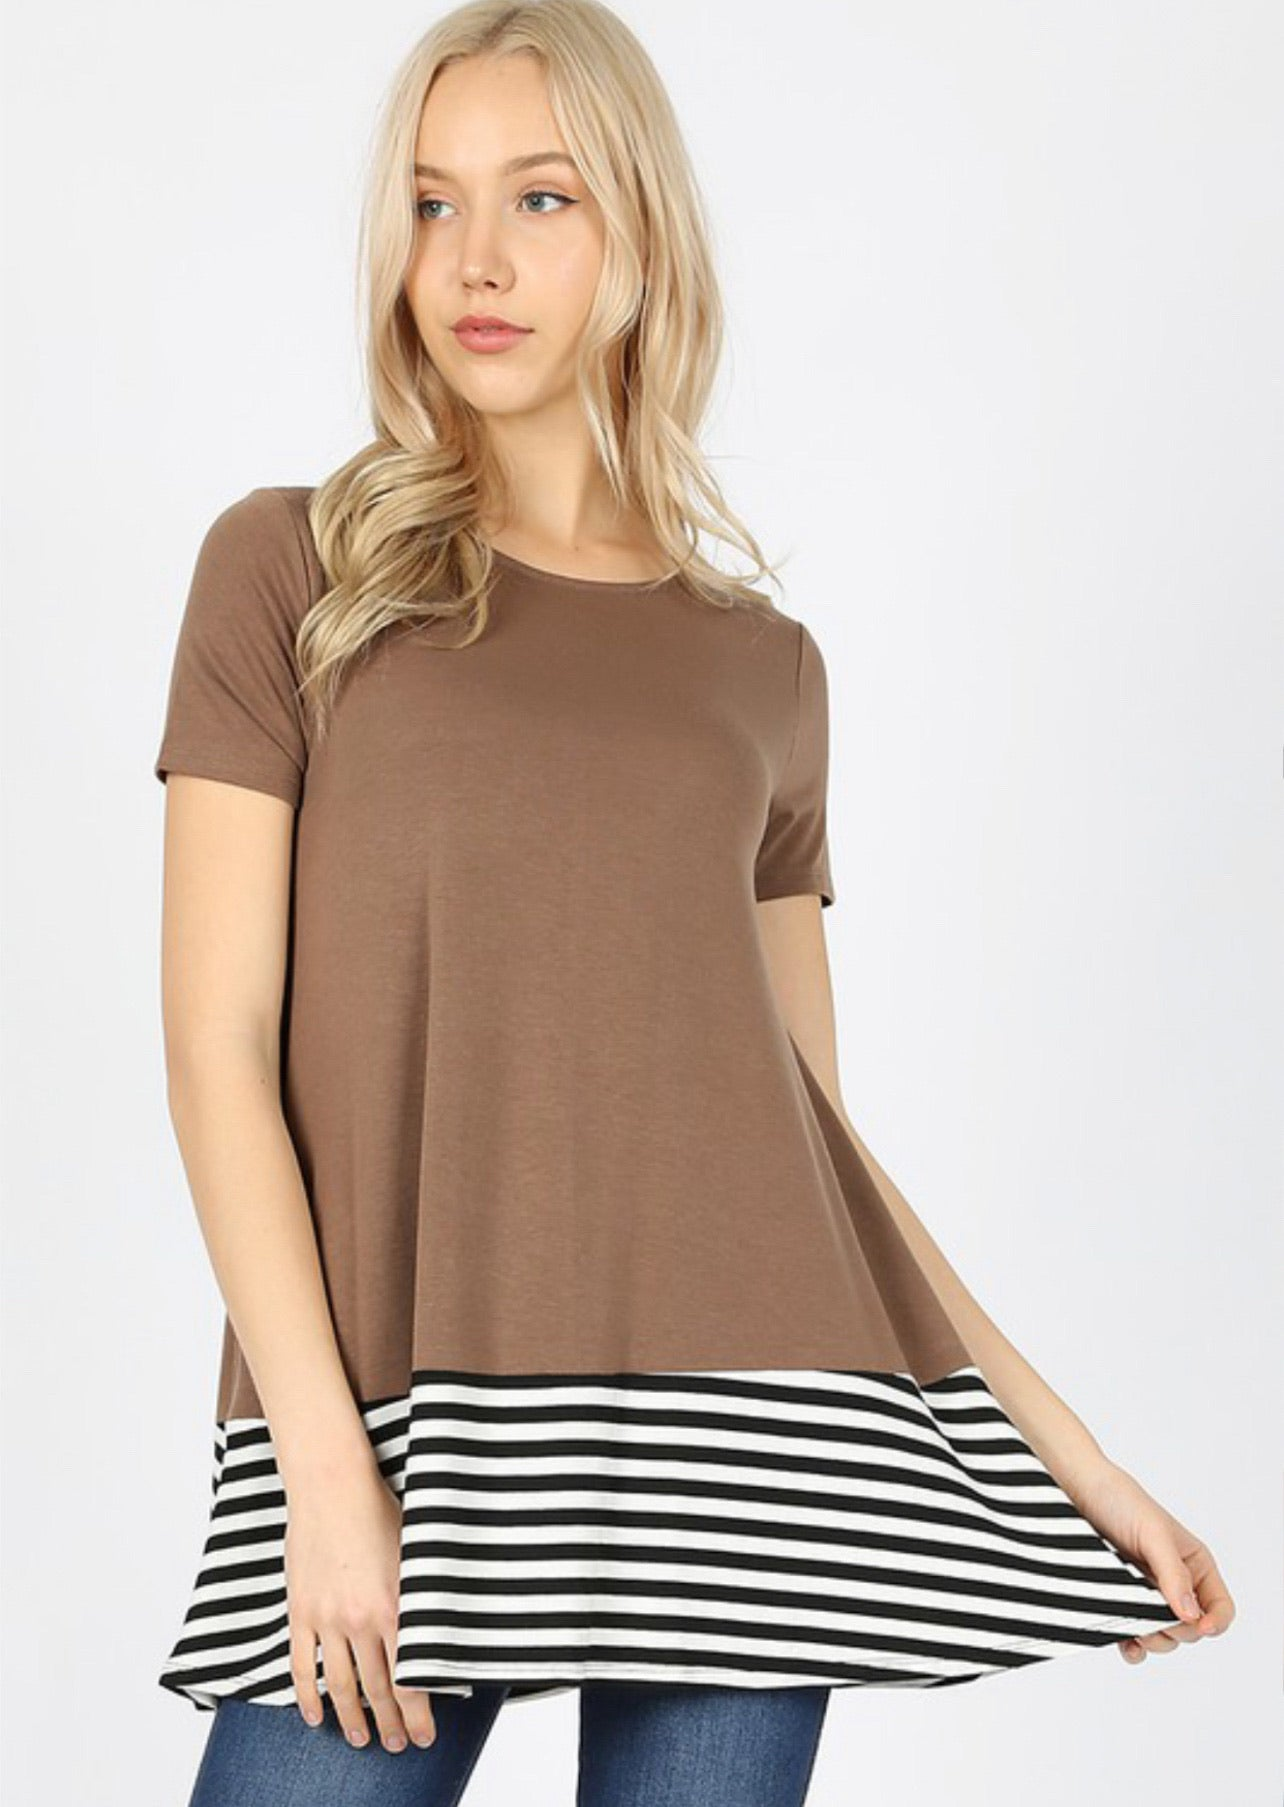 Striped & Solid Short Sleeve Top